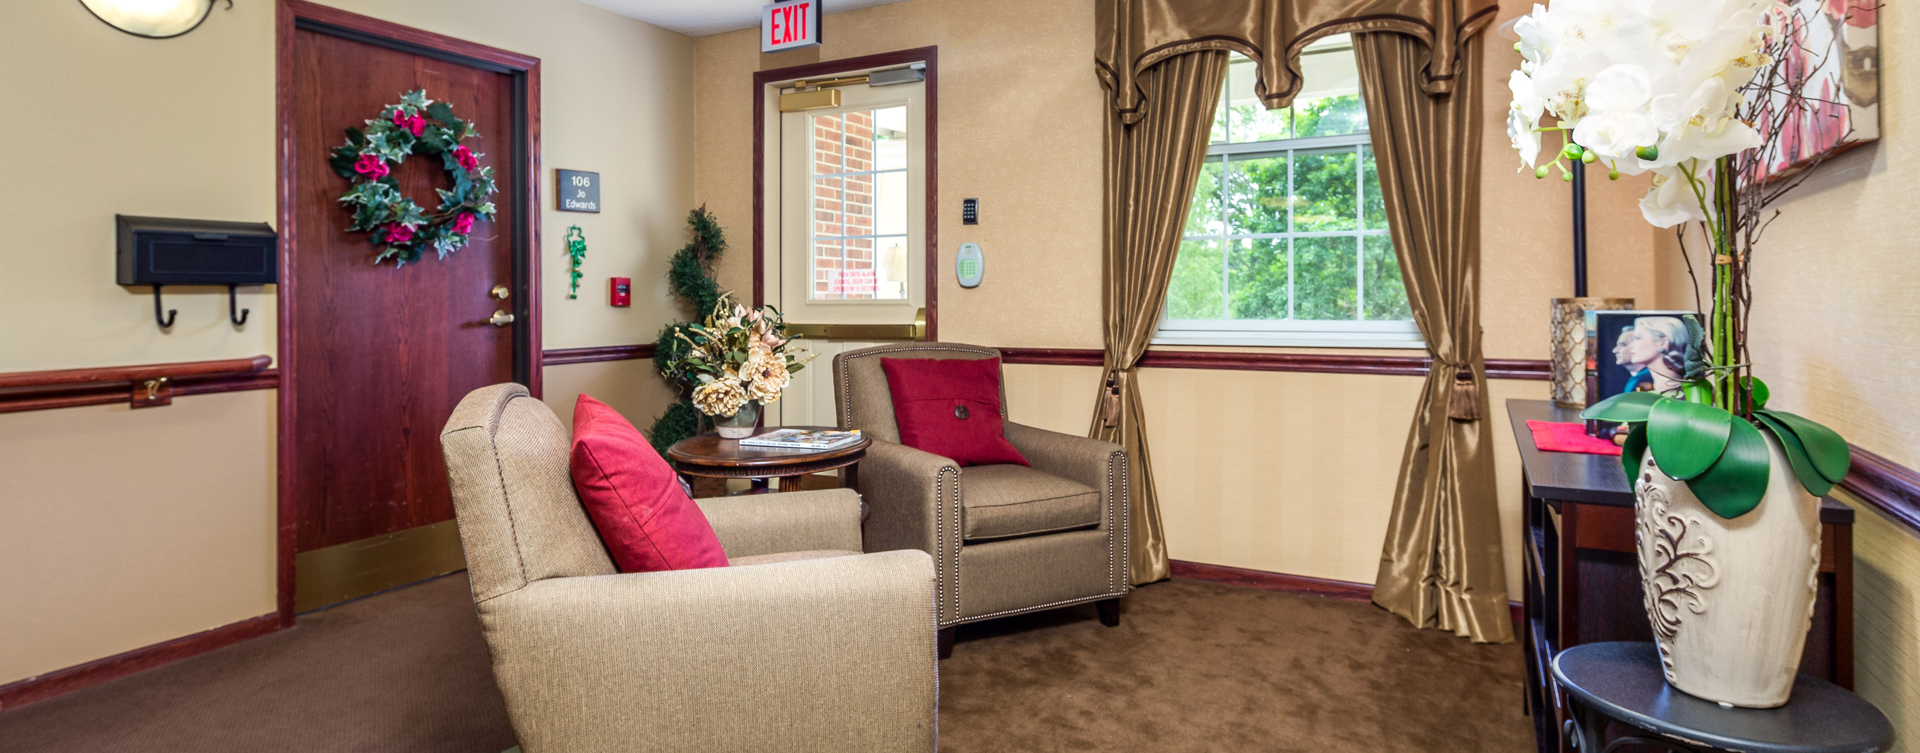 Enjoy a good snooze in the sitting area at Bickford of Battle Creek